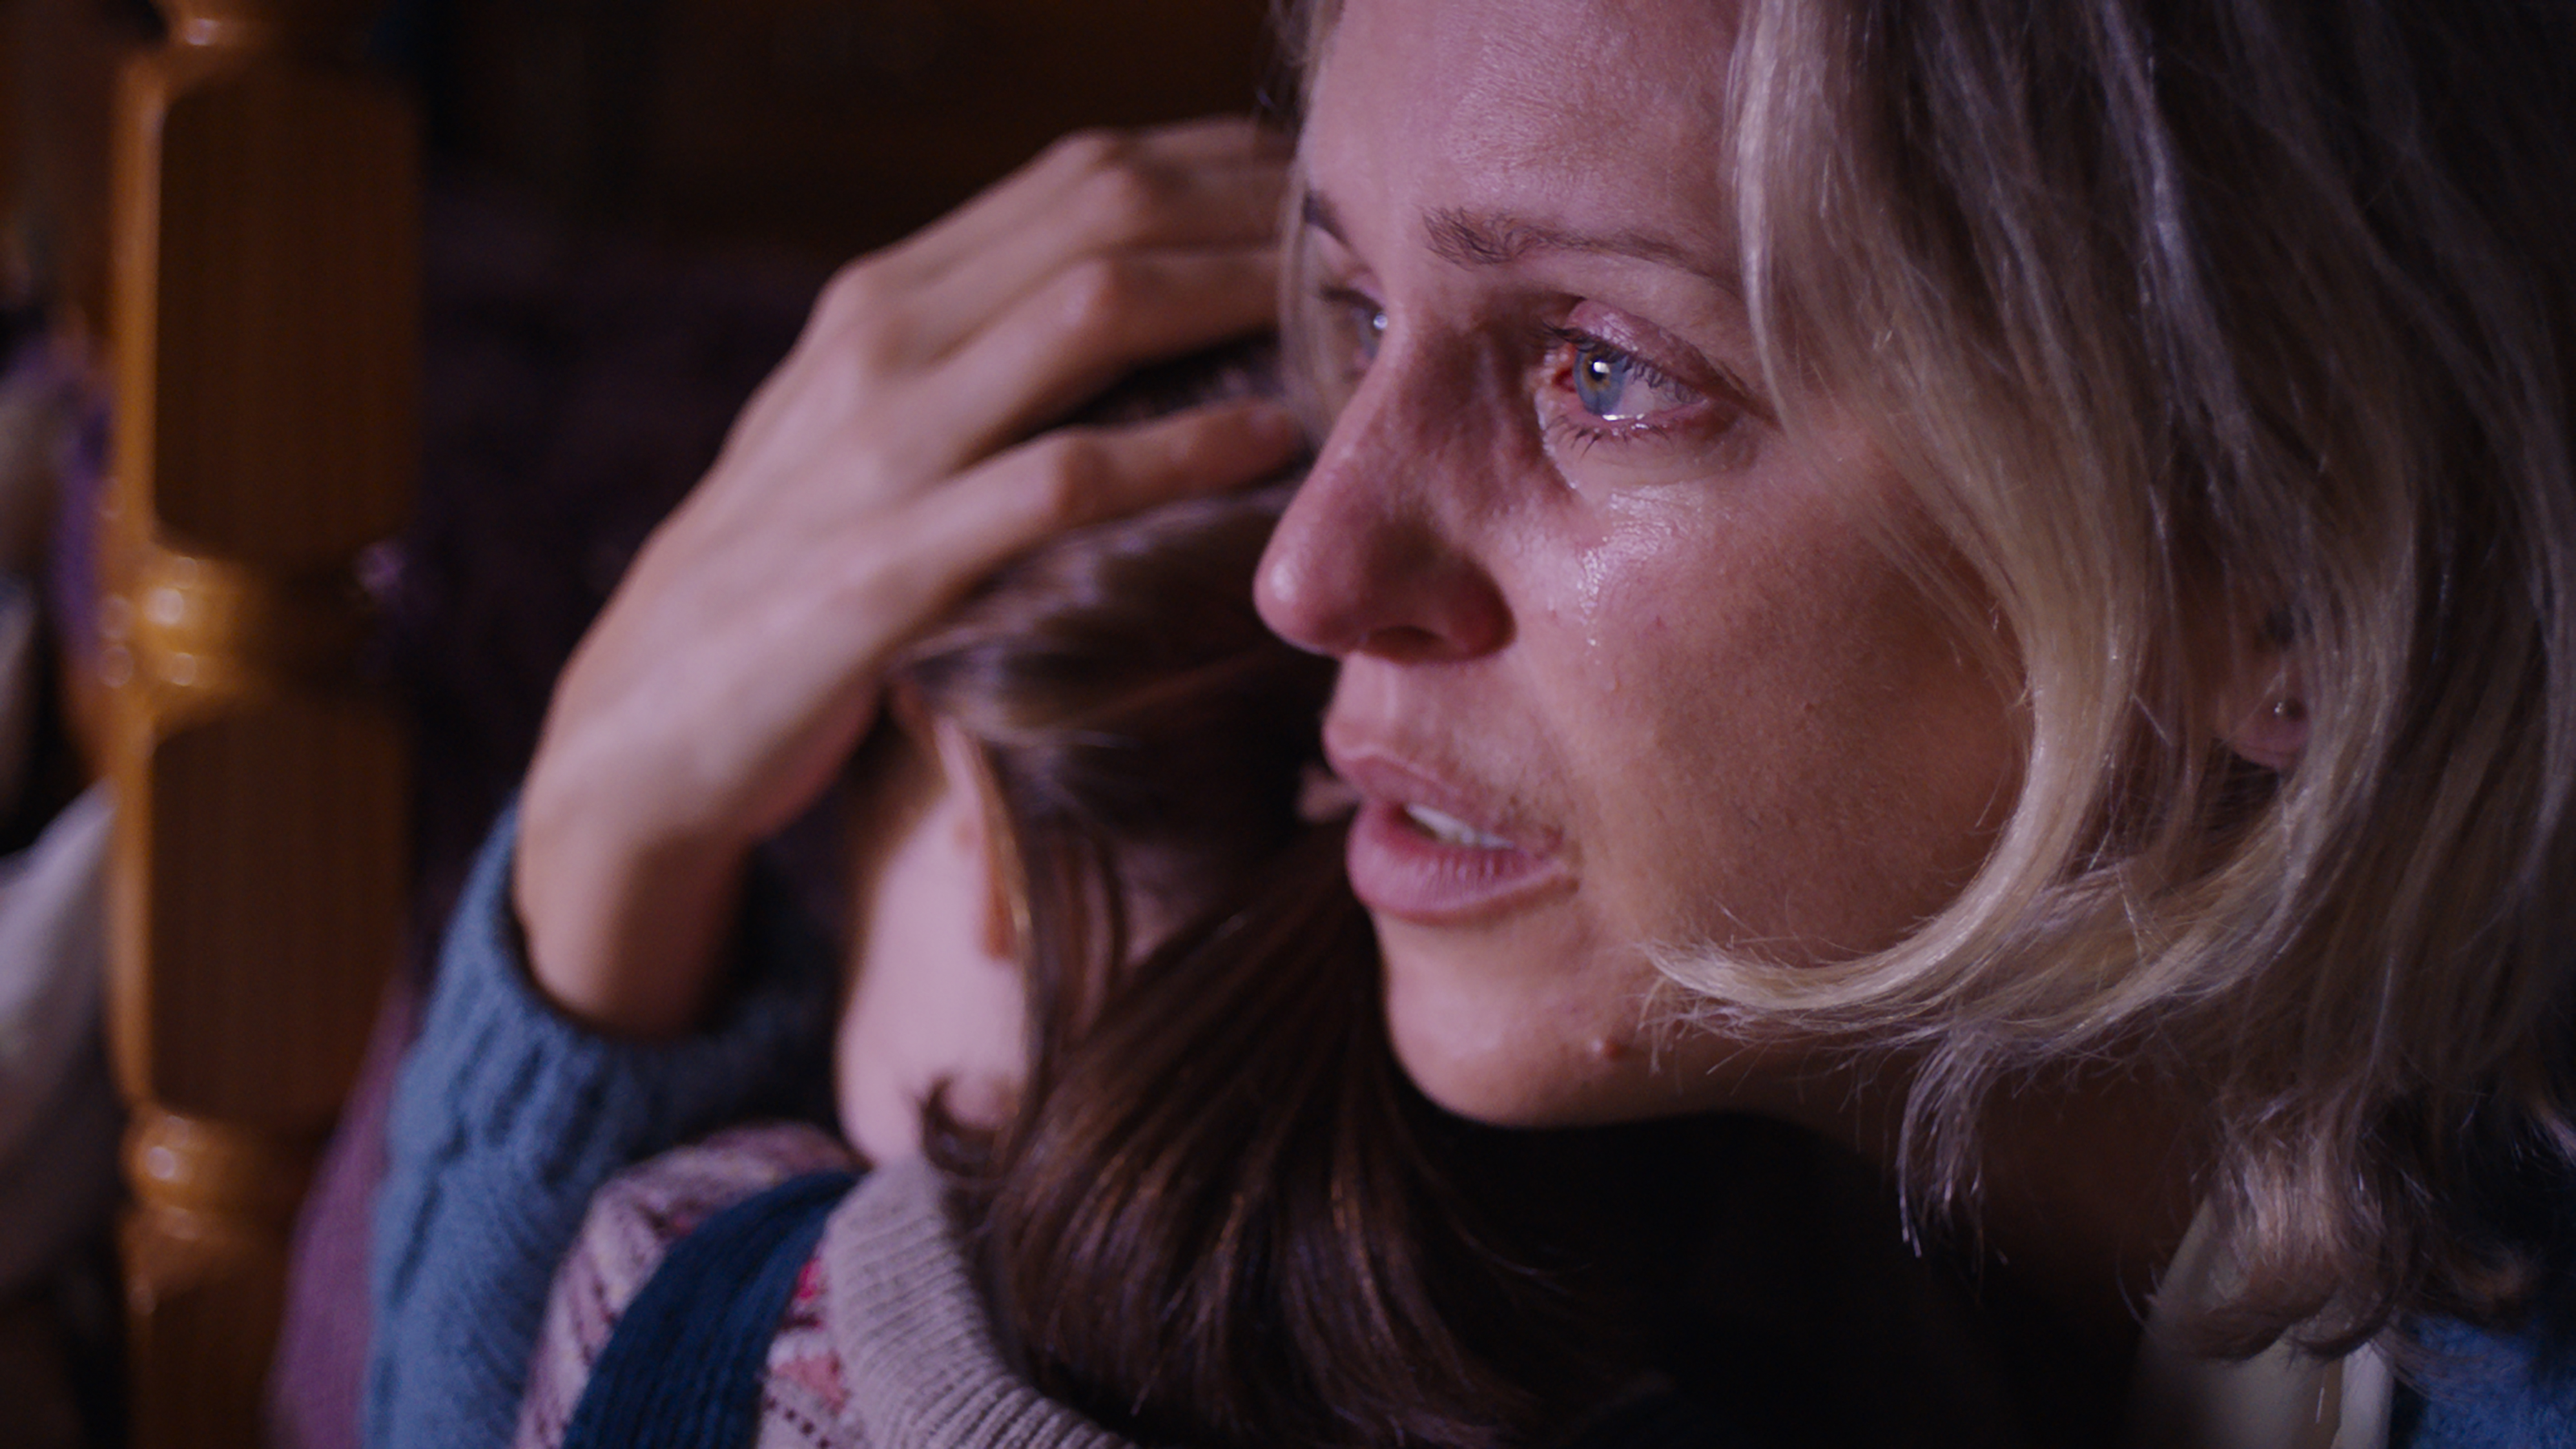 A blonde woman crying in close-up. She holds a young brunette girl close, with a protective